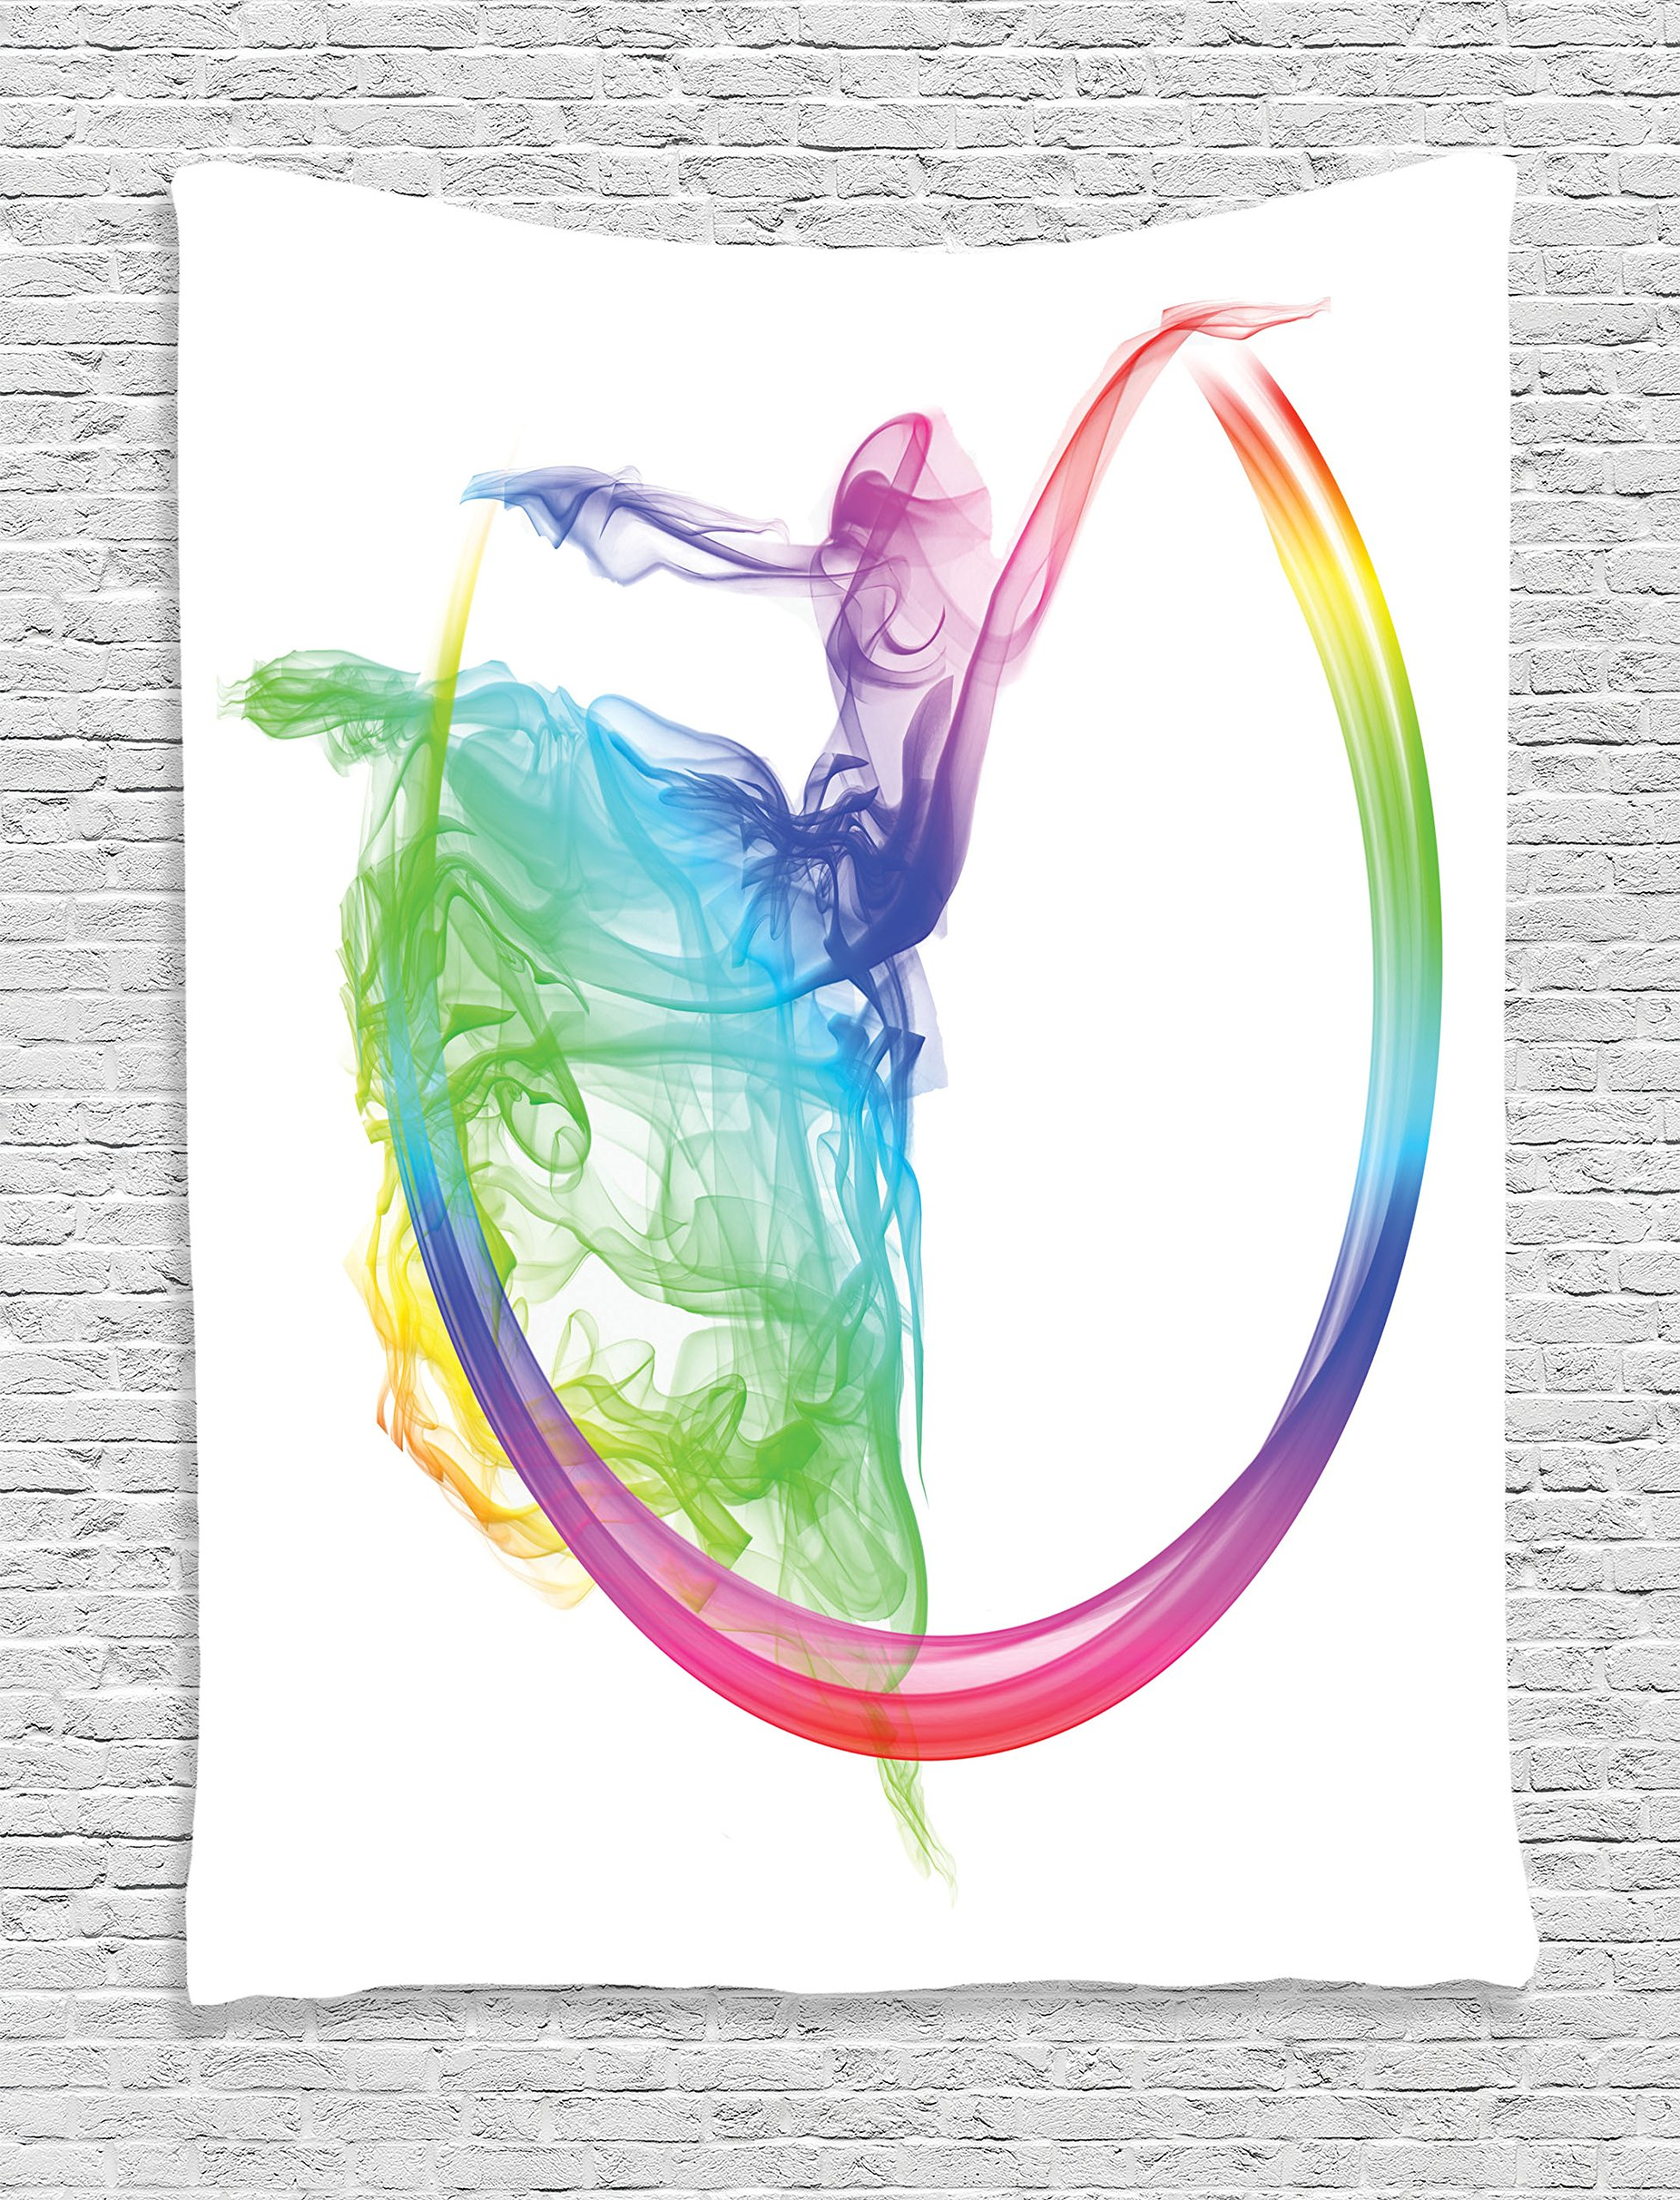 Ambesonne Abstract Home Decor Collection, Smoke Dance Shape Silhouette of Dancer Ballerina Rainbow Colors Fantasy Image, Bedroom Living Room Dorm Wall Hanging Tapestry, Blue Aqua Yellow